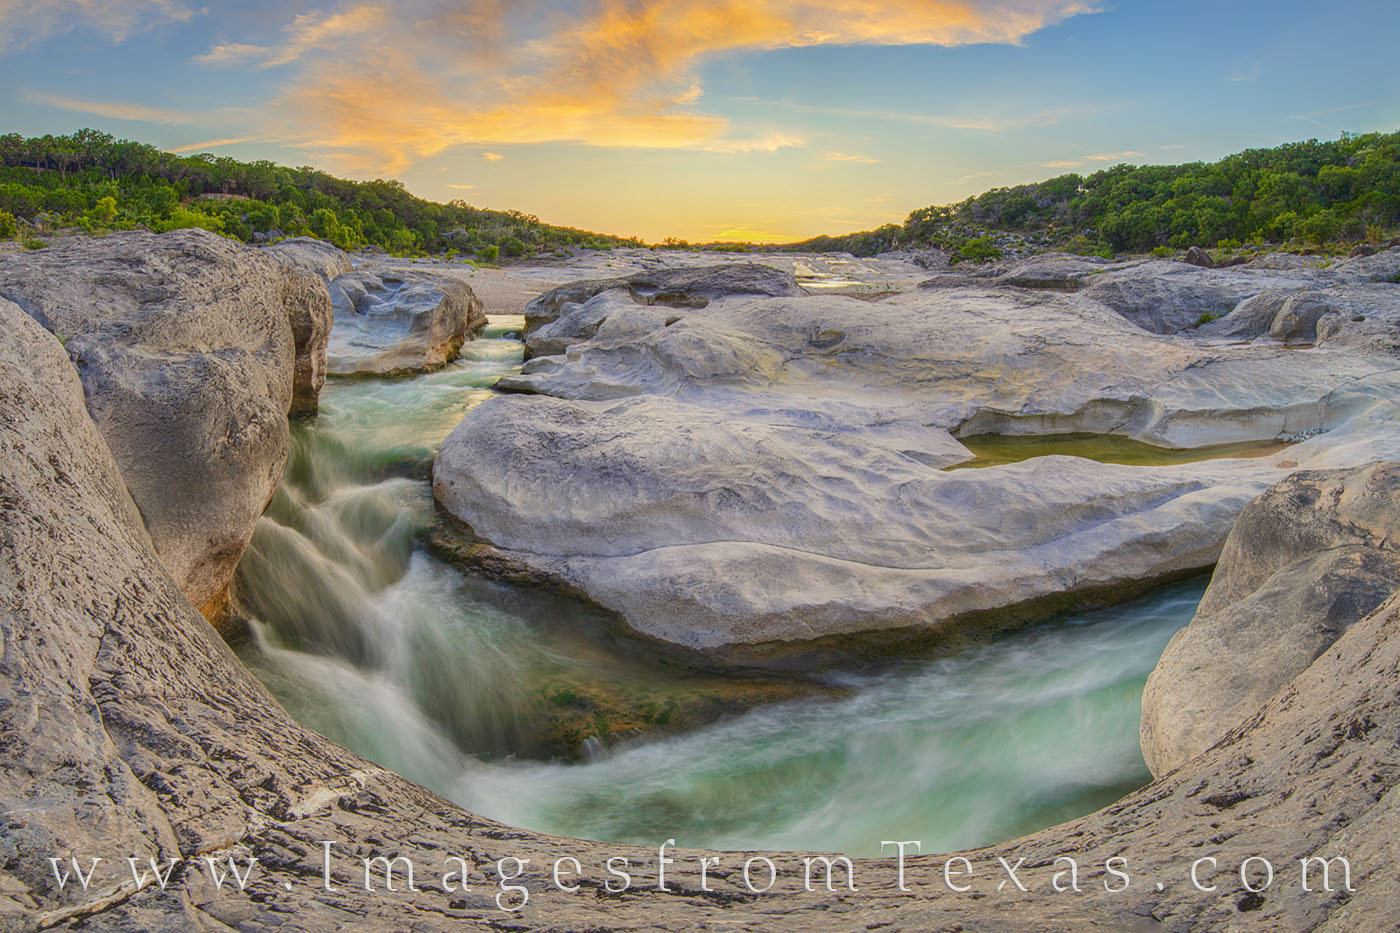 pedernales falls, pedernales river, hill country, texas hill country, sunset, evening, water, river, solitude, texas state park, summer, photo